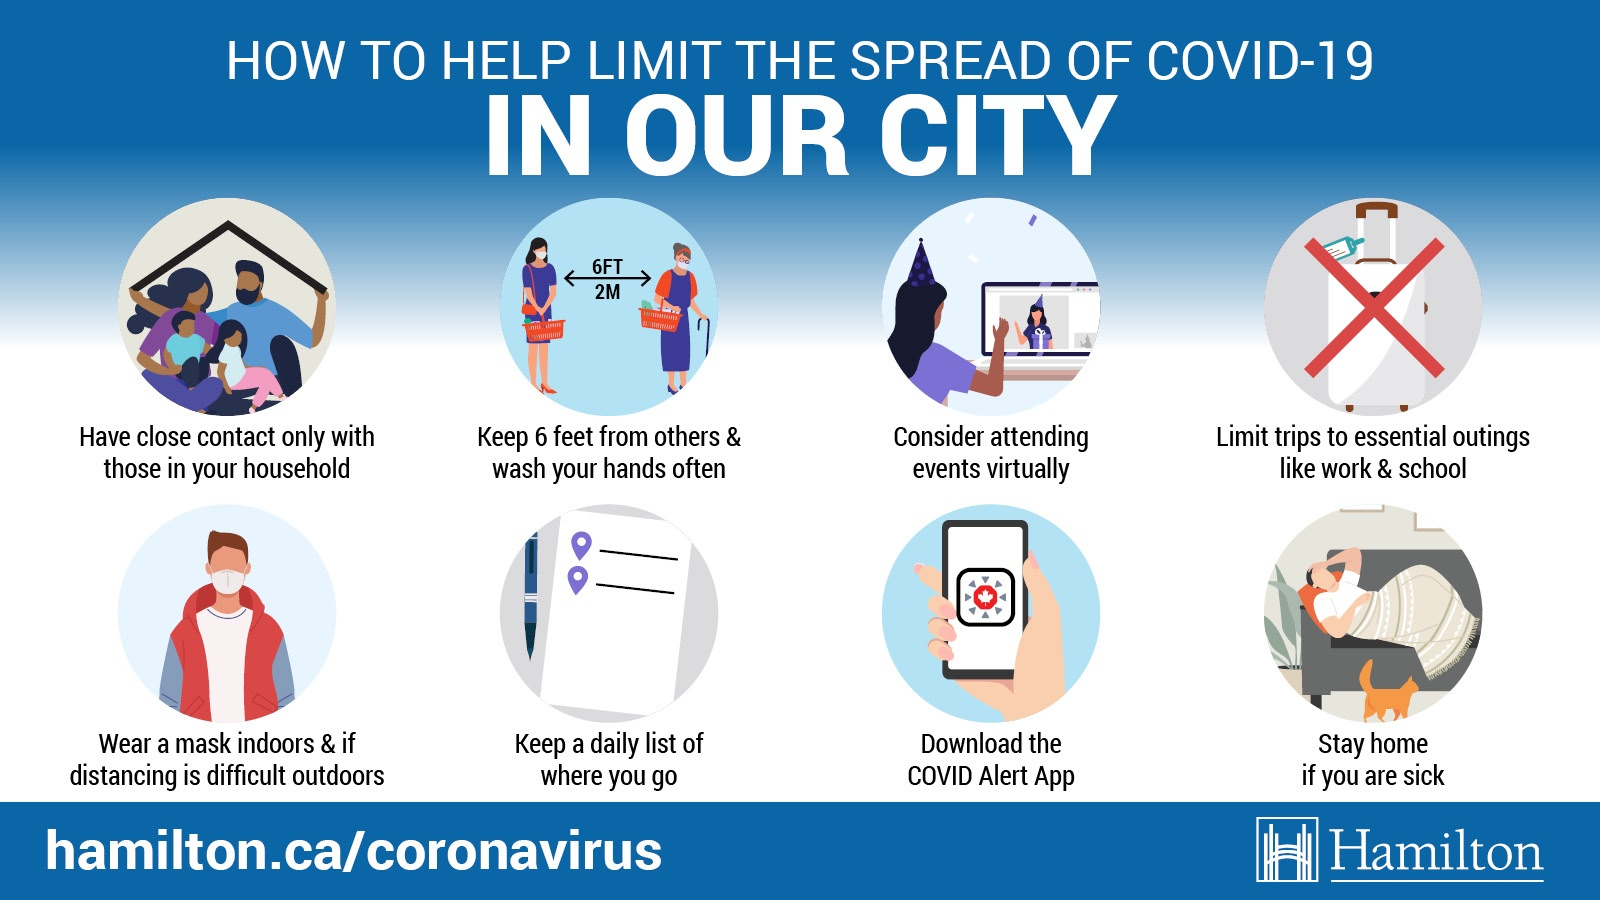 Tips on how to help limit the spread of COVID-19 in our City